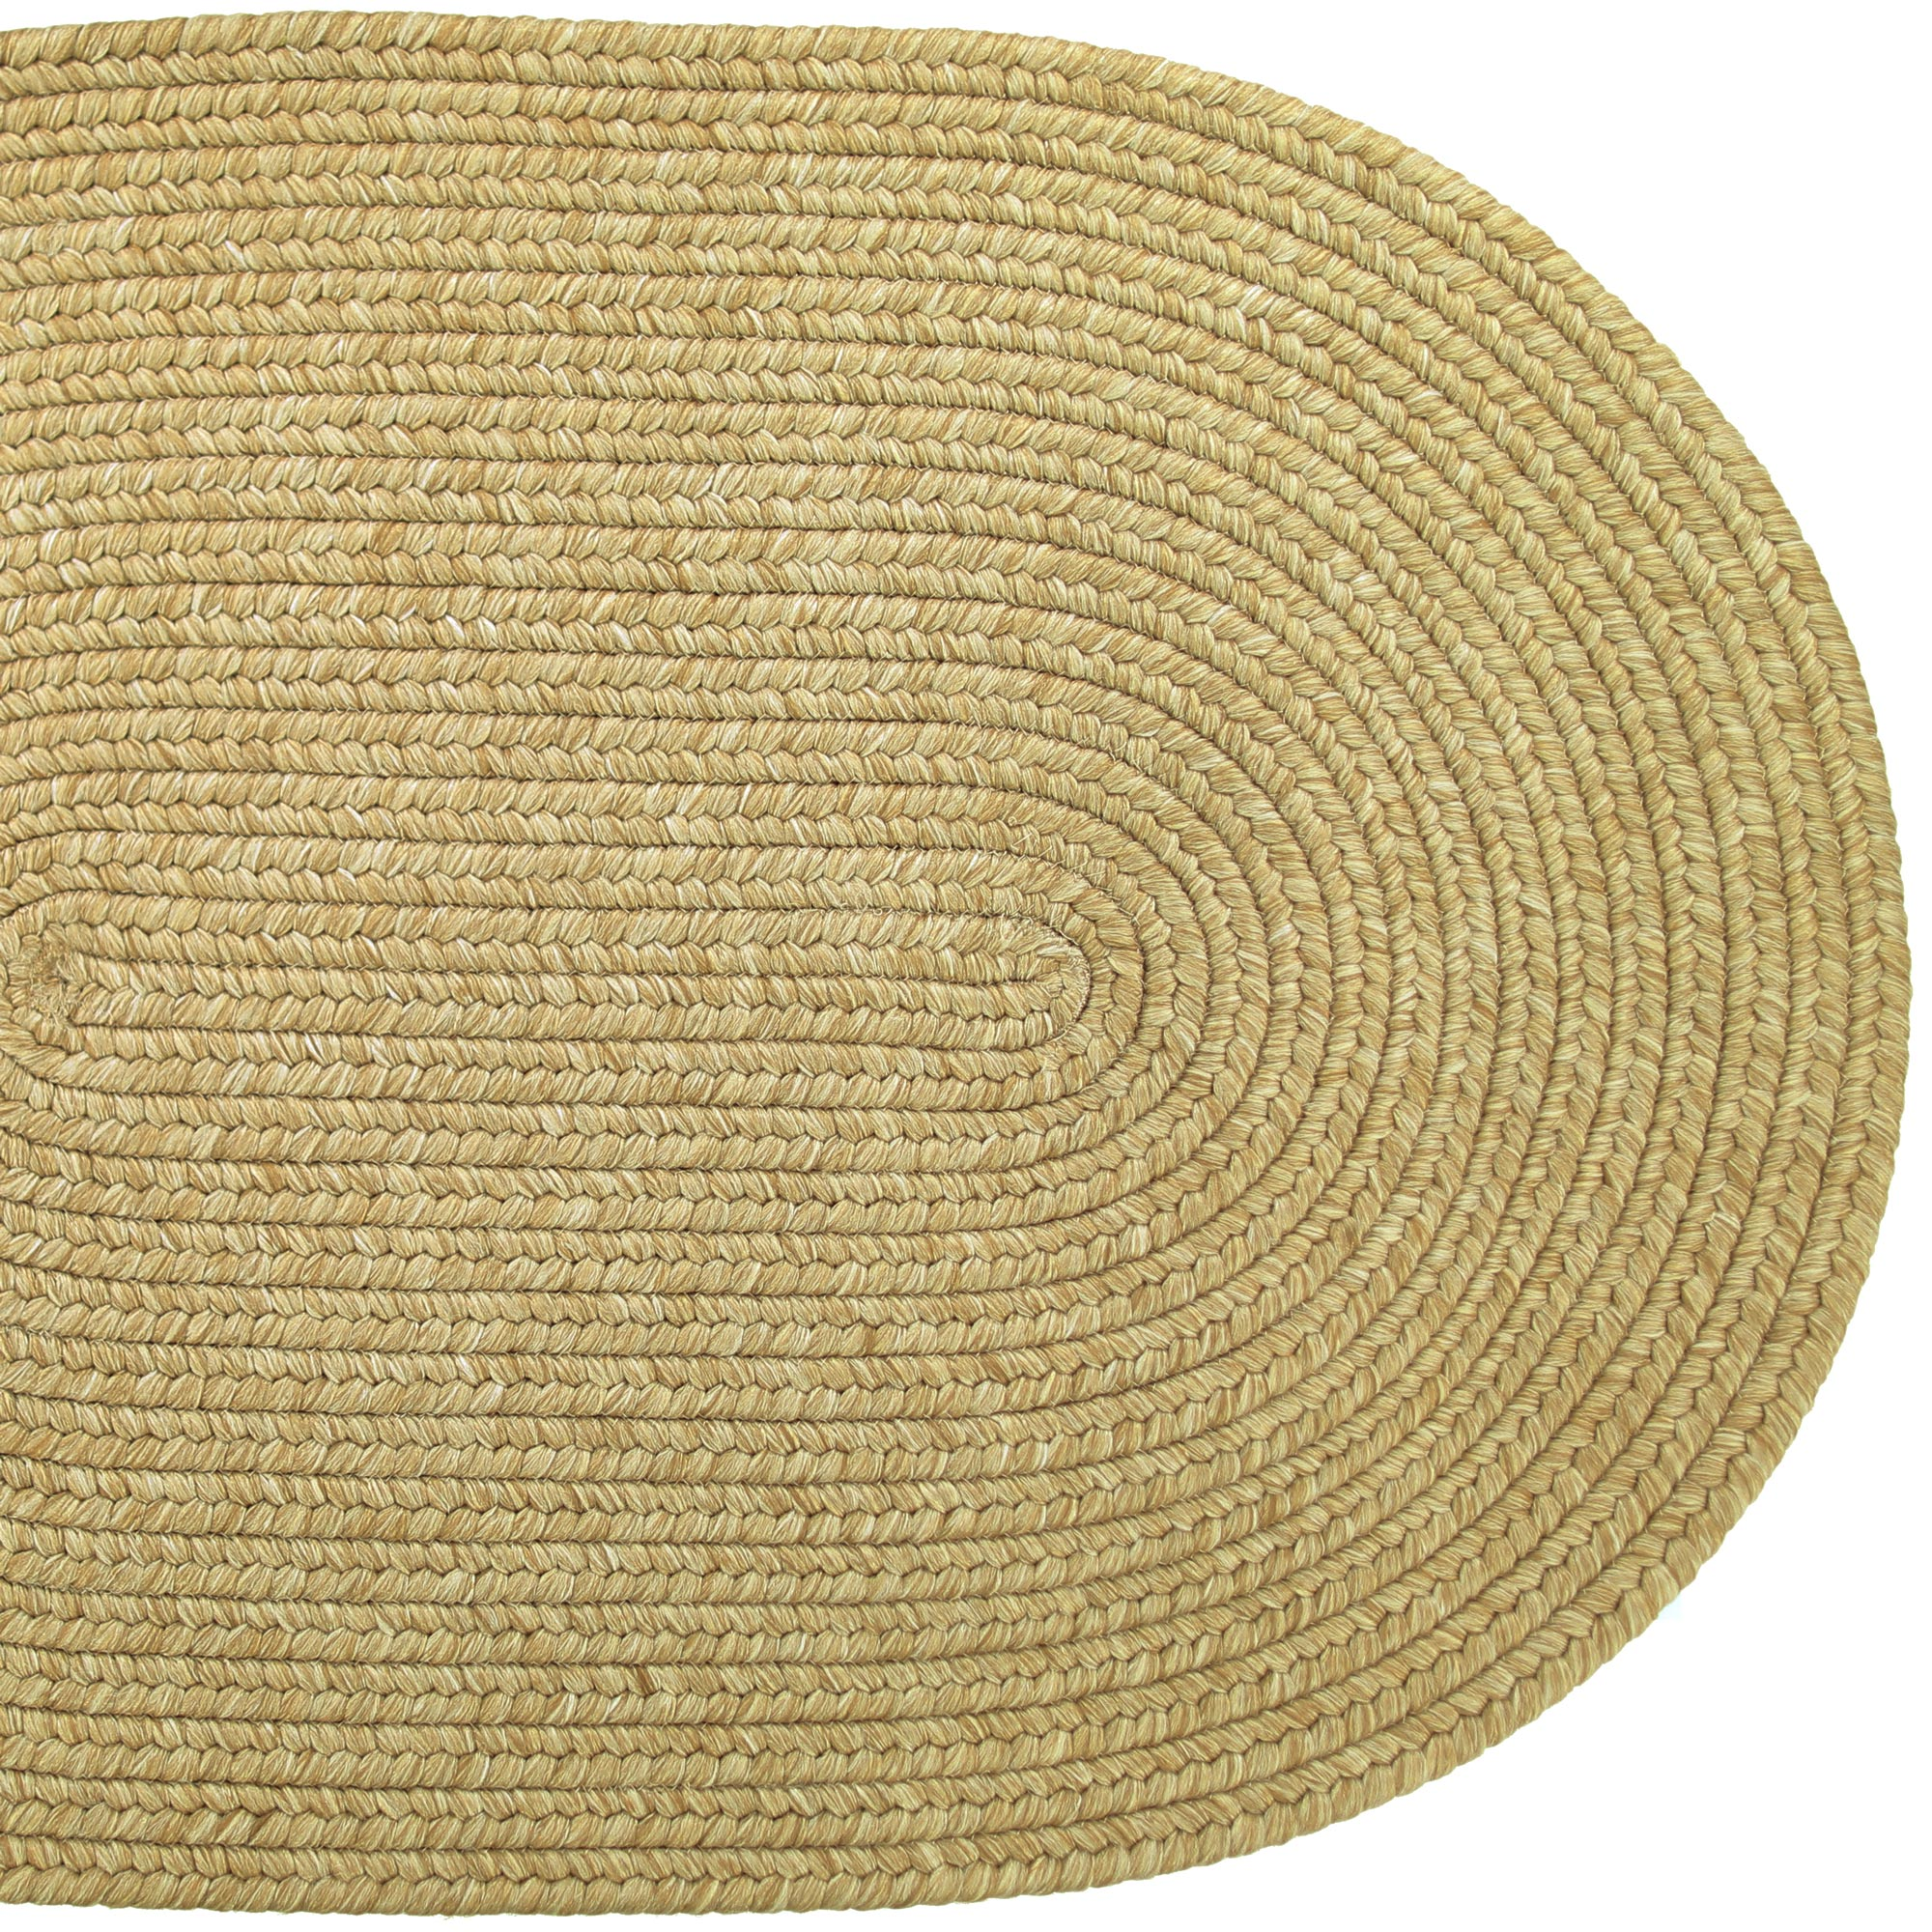 Solid Braided Area Rugs Indoor Outdoor Oval Rectangle - photo#42